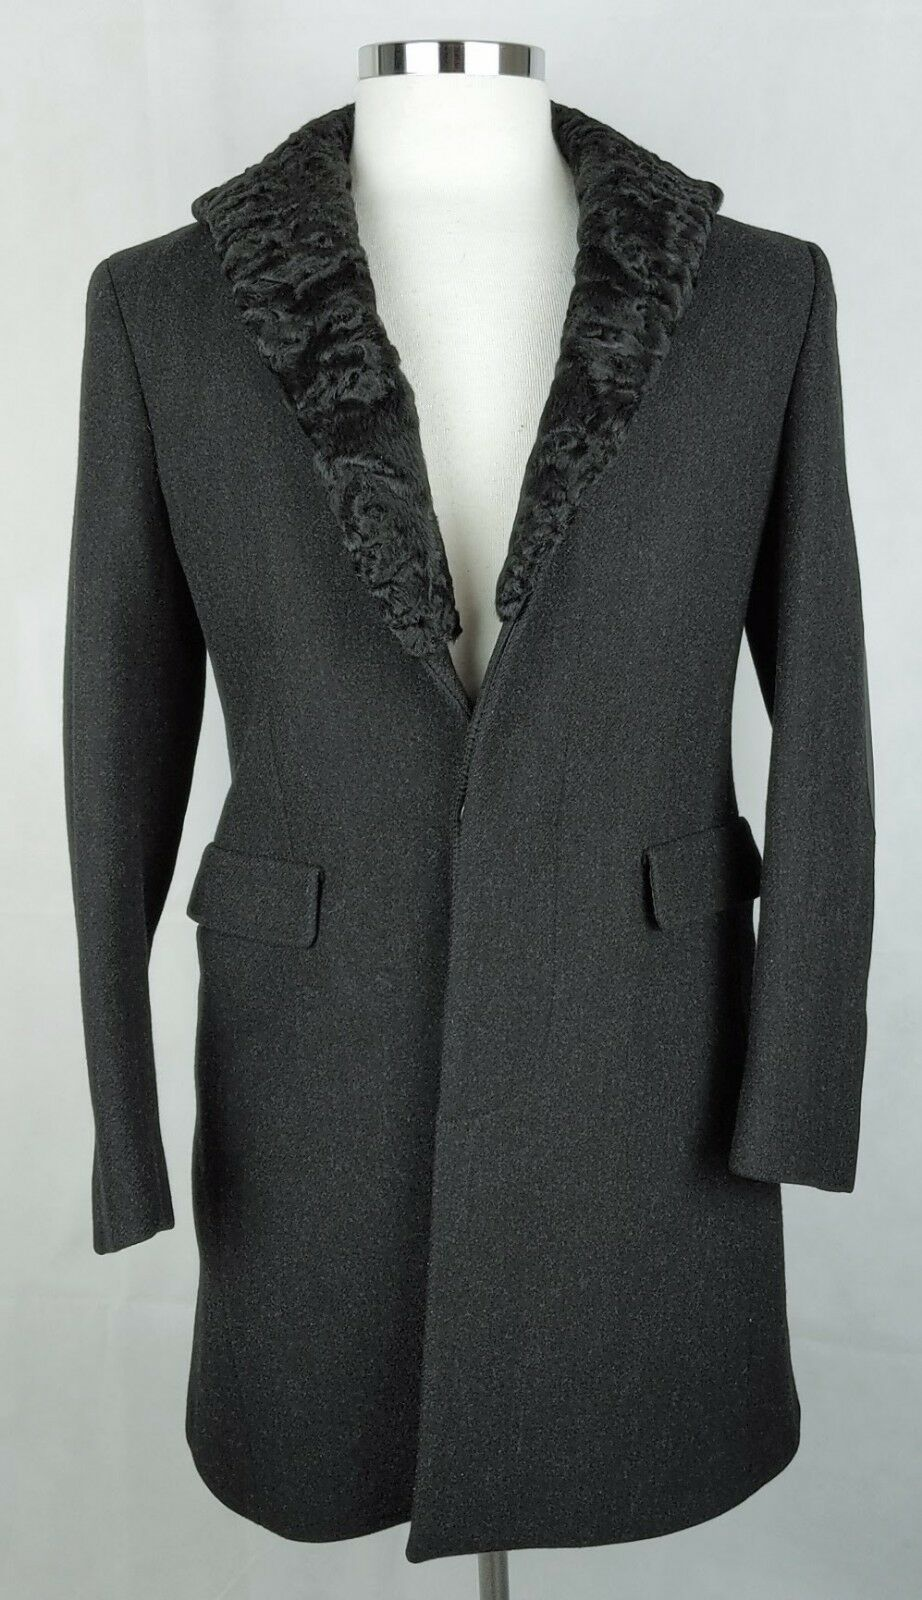 100% Authentic PRADA Virgin Wool Leather Coat With Lamb Fur 46R   10-12 US MINT